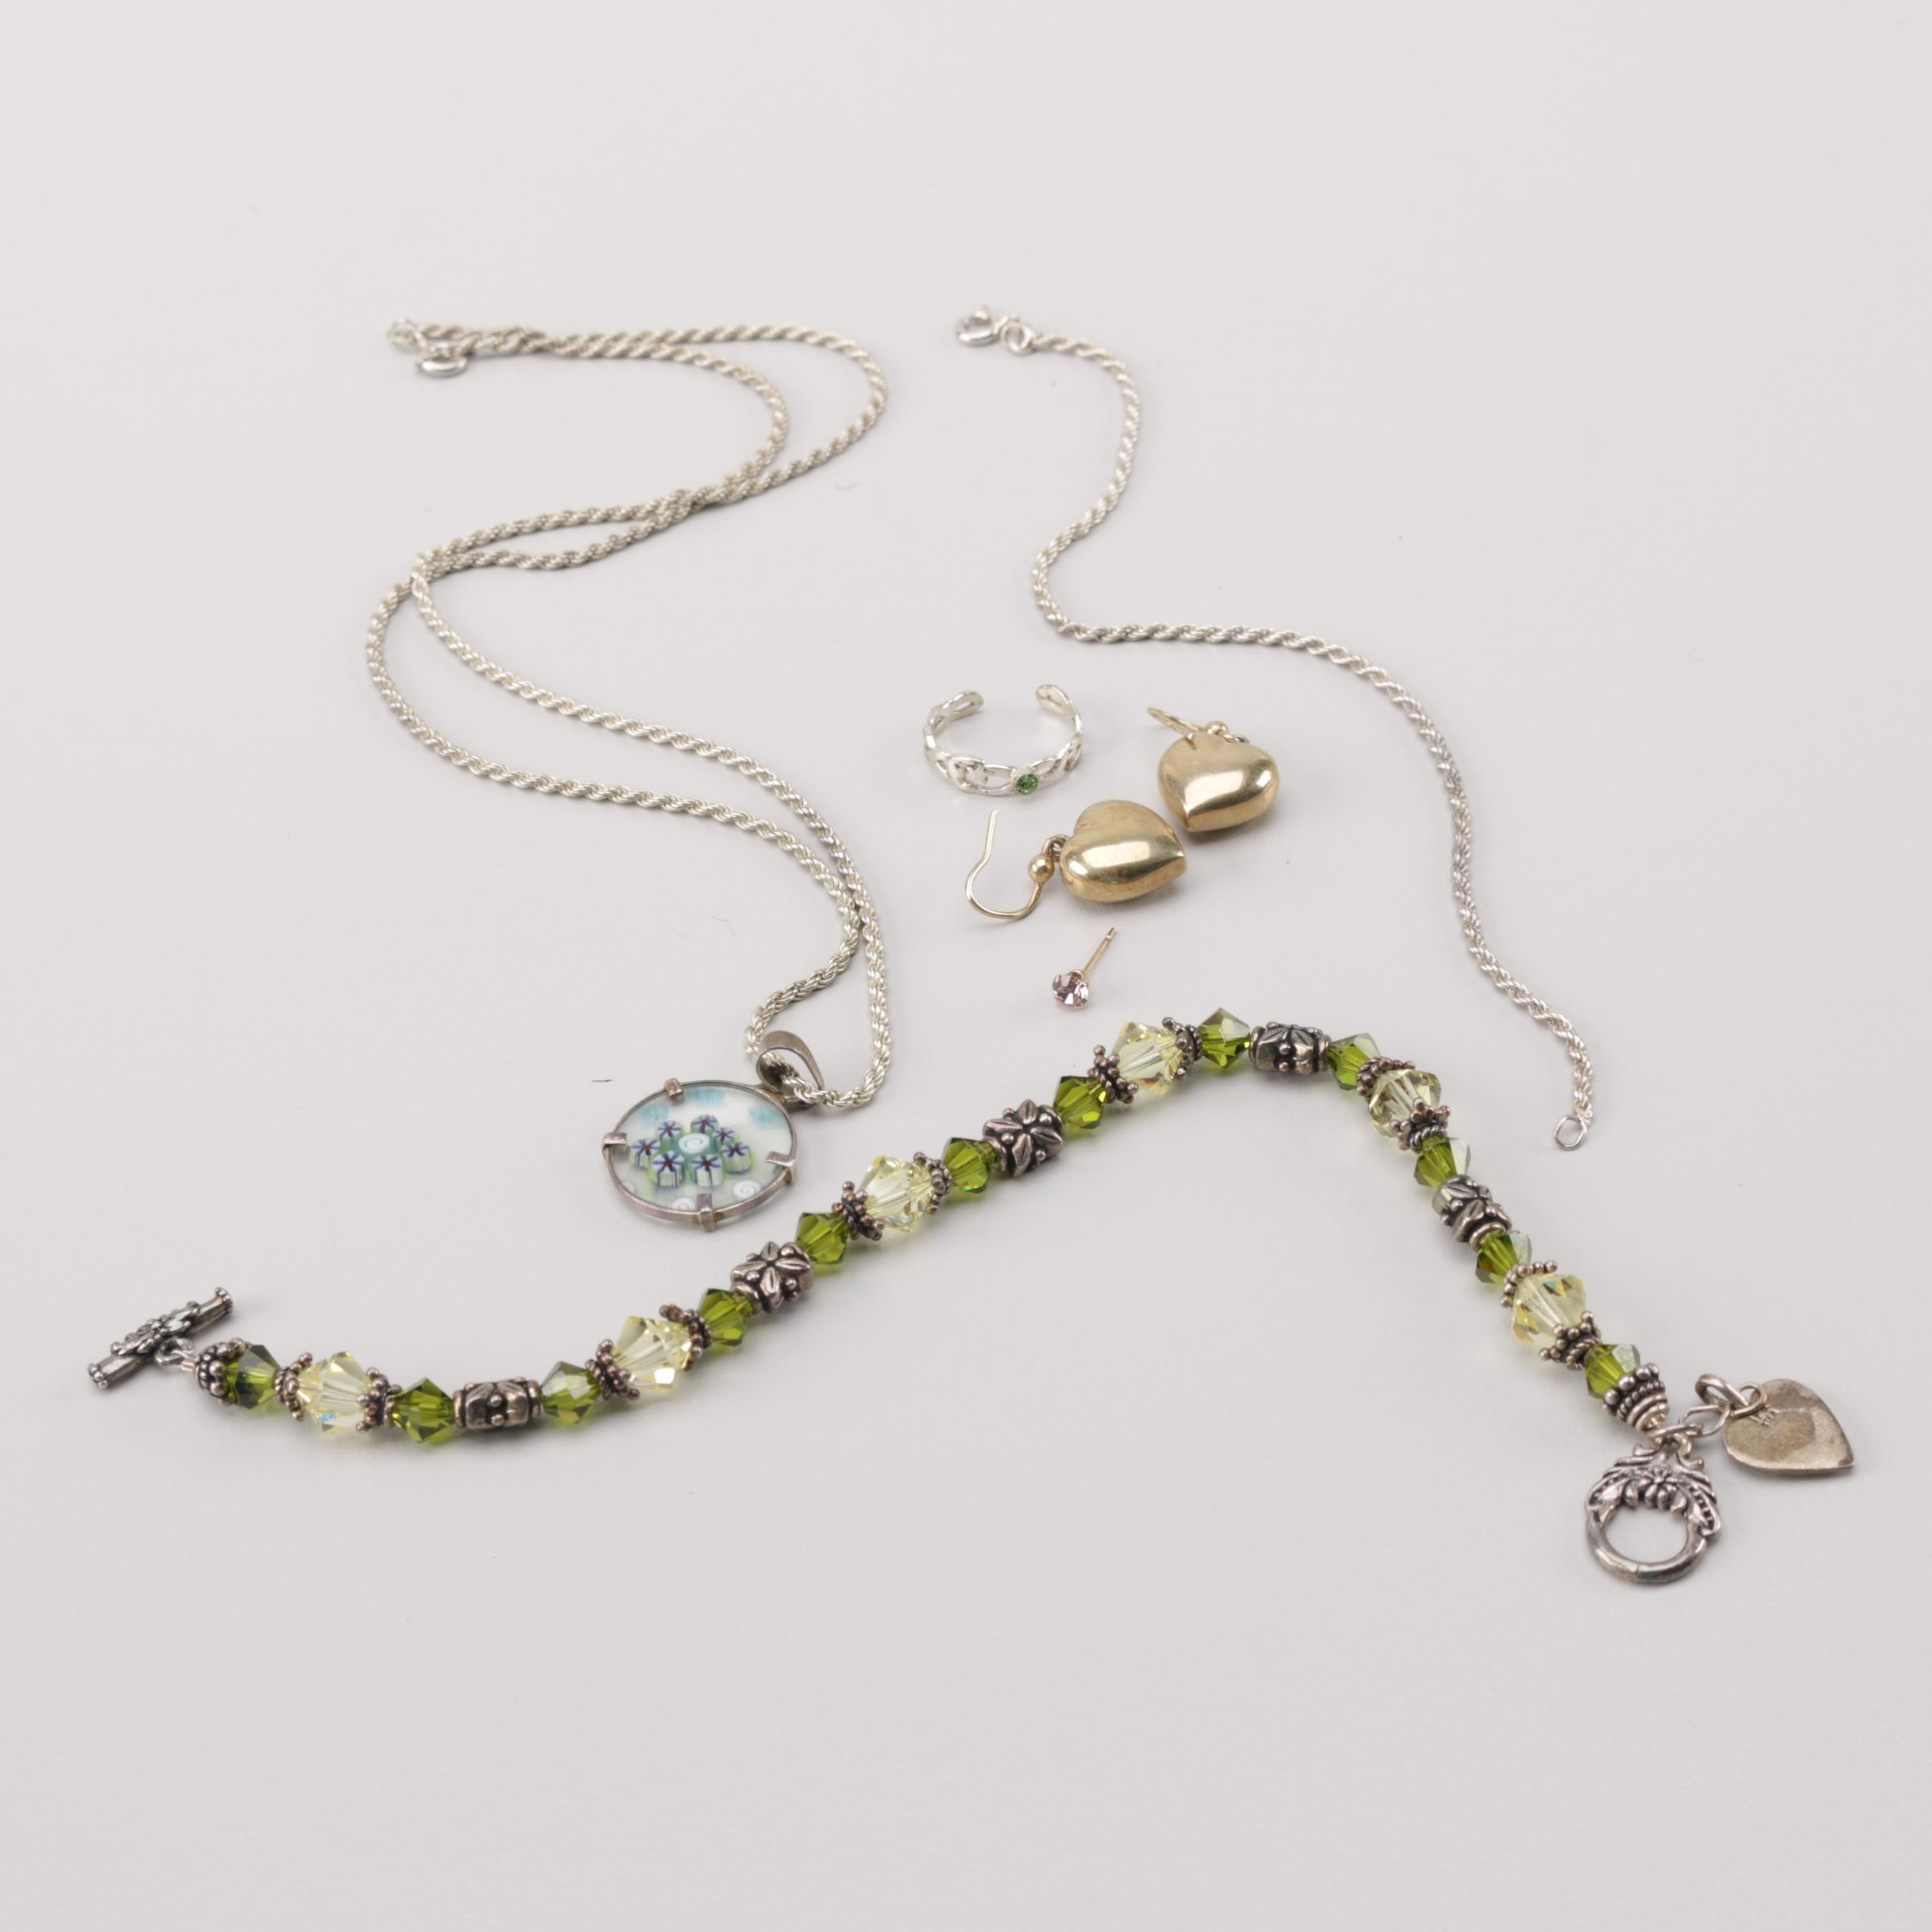 Sterling Silver and 14K Gold Glass and Foilback Jewelry